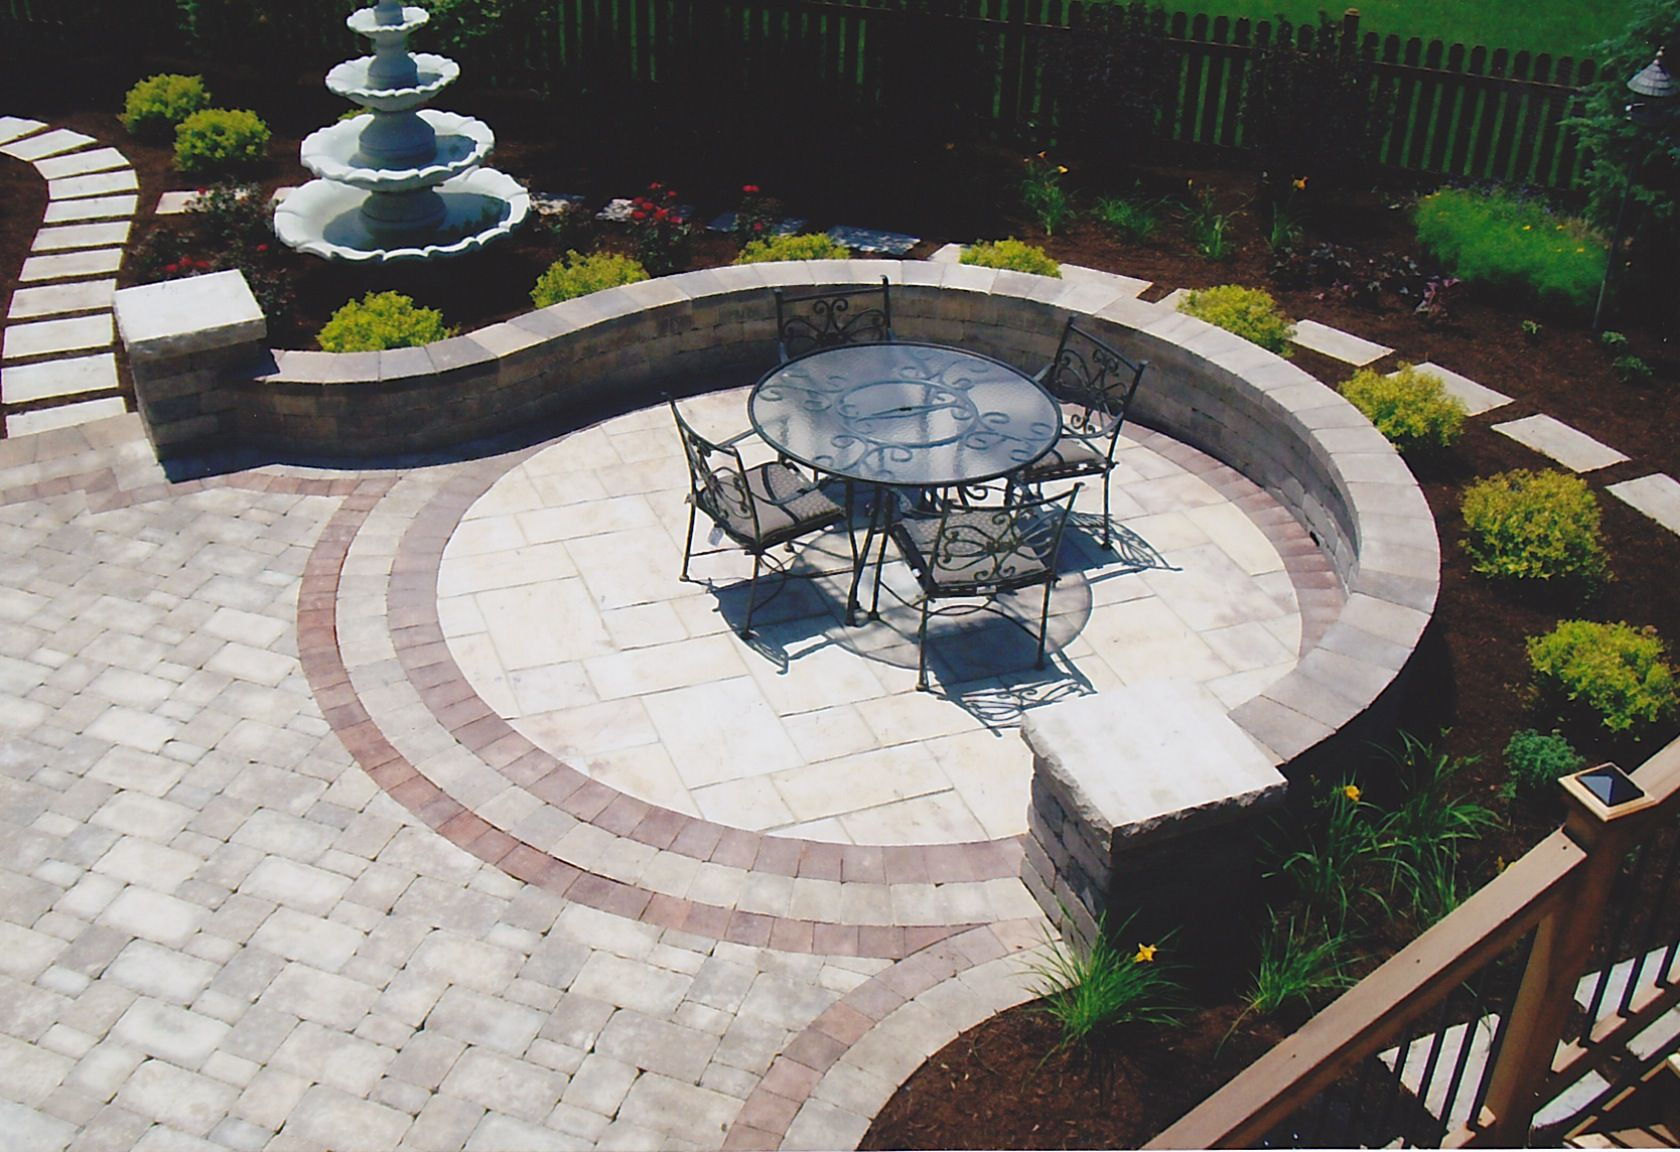 backyard patio ideas patio paver innovative brick paver designs for patio also a set of vintage wrought iron outdoor furniture above flanders weavers - Paver Patio Design Ideas